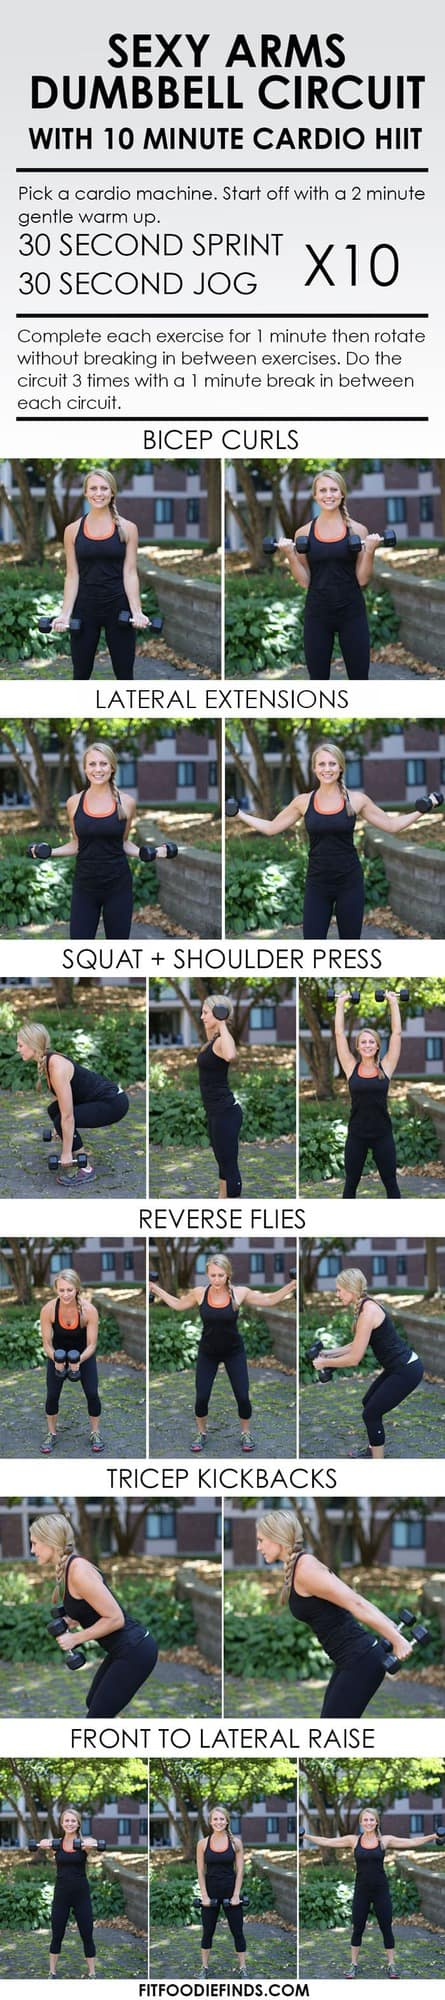 Workouts To Do In 2016 Fit Foodie Finds And Tagged Circuit Workout Full Body Mix Upper Cardio For An Awesome Sweaty